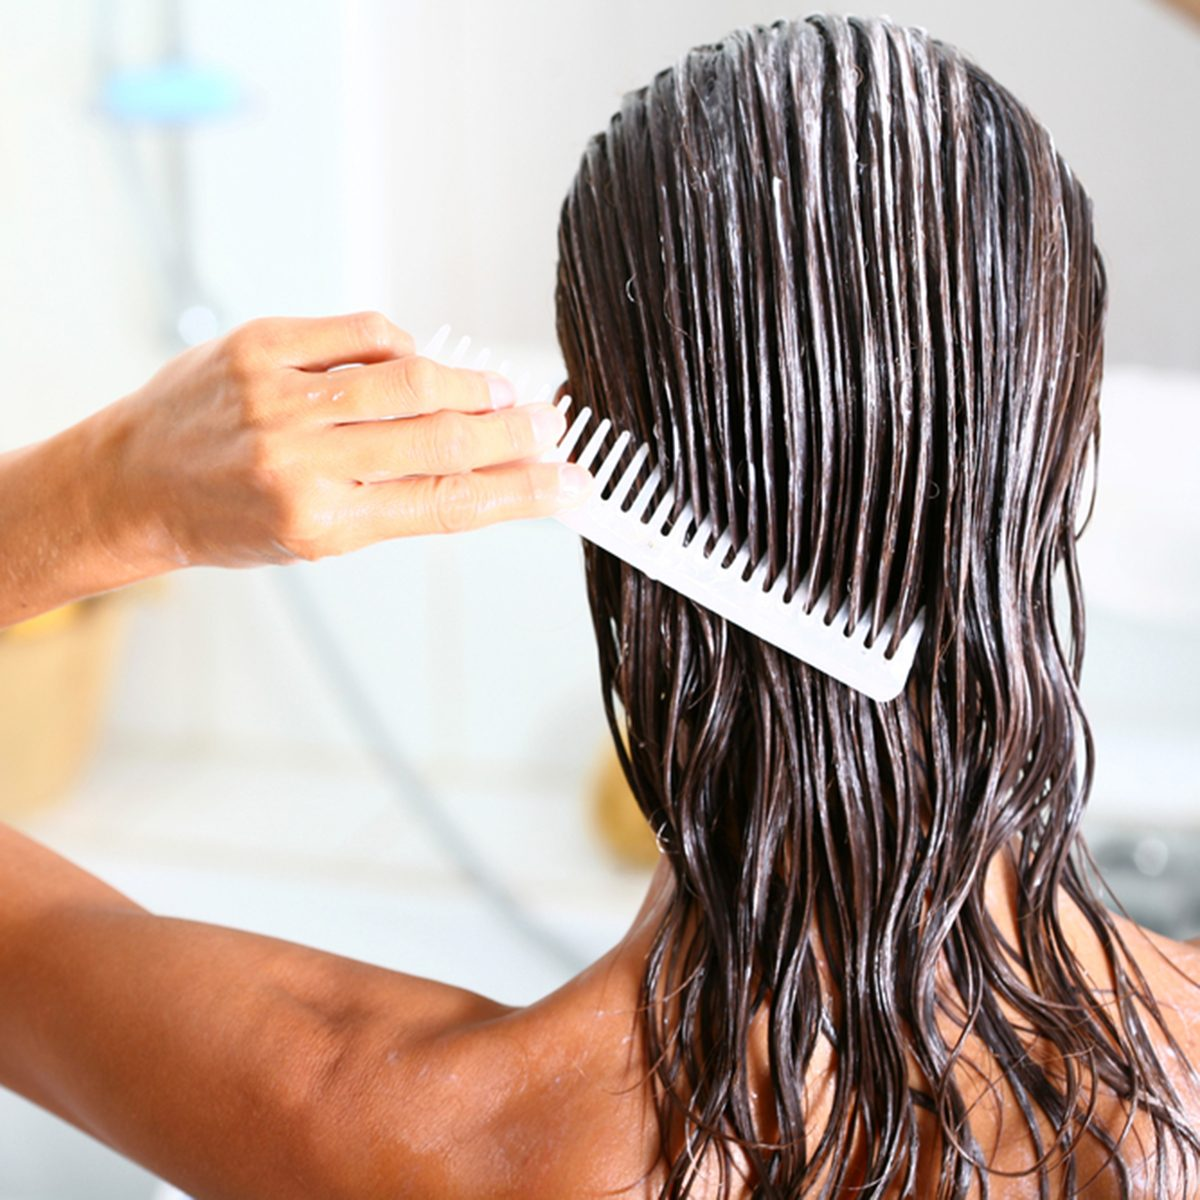 woman applying hair care with a comb